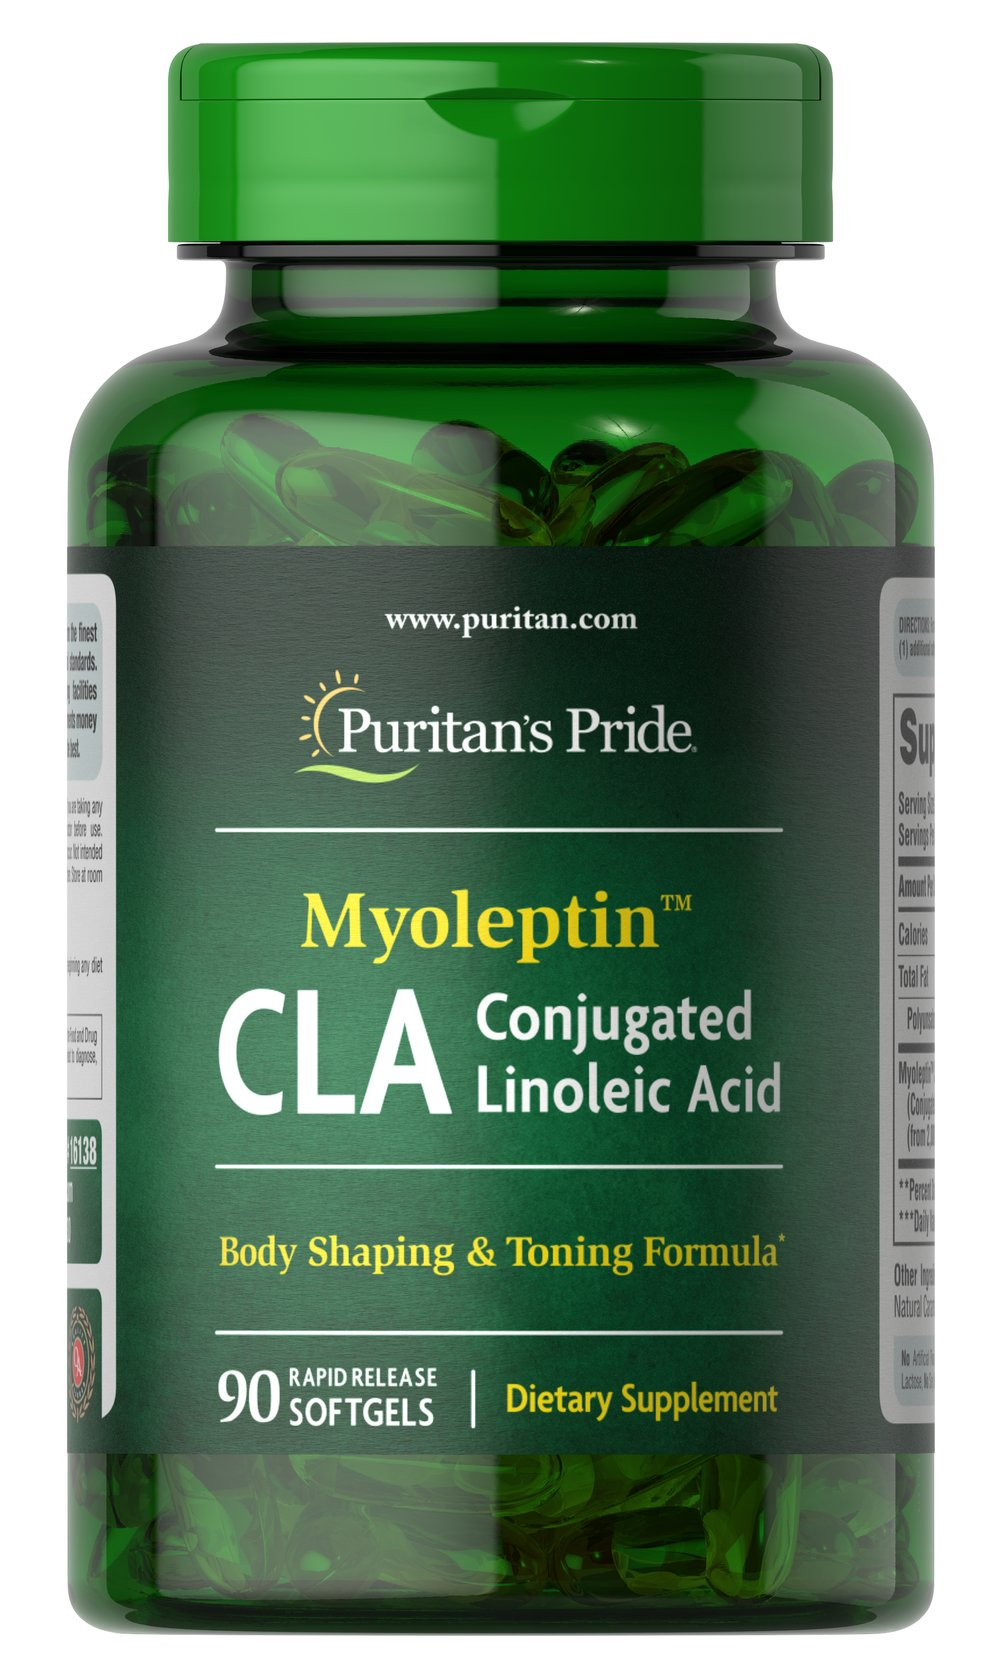 Myo-Leptin™ CLA 1000 mg <p>CLA (Conjugated Linoleic Acid) supports a healthy body composition**</p><p>Derived from Safflower Oil, CLA supports your dieting goals**</p><p>Rapid Release softgels are formulated for quick release into your system</p><p>Use with a reduced calorie diet and daily exercise program</p> 90 Softgels 1000 mg $16.49